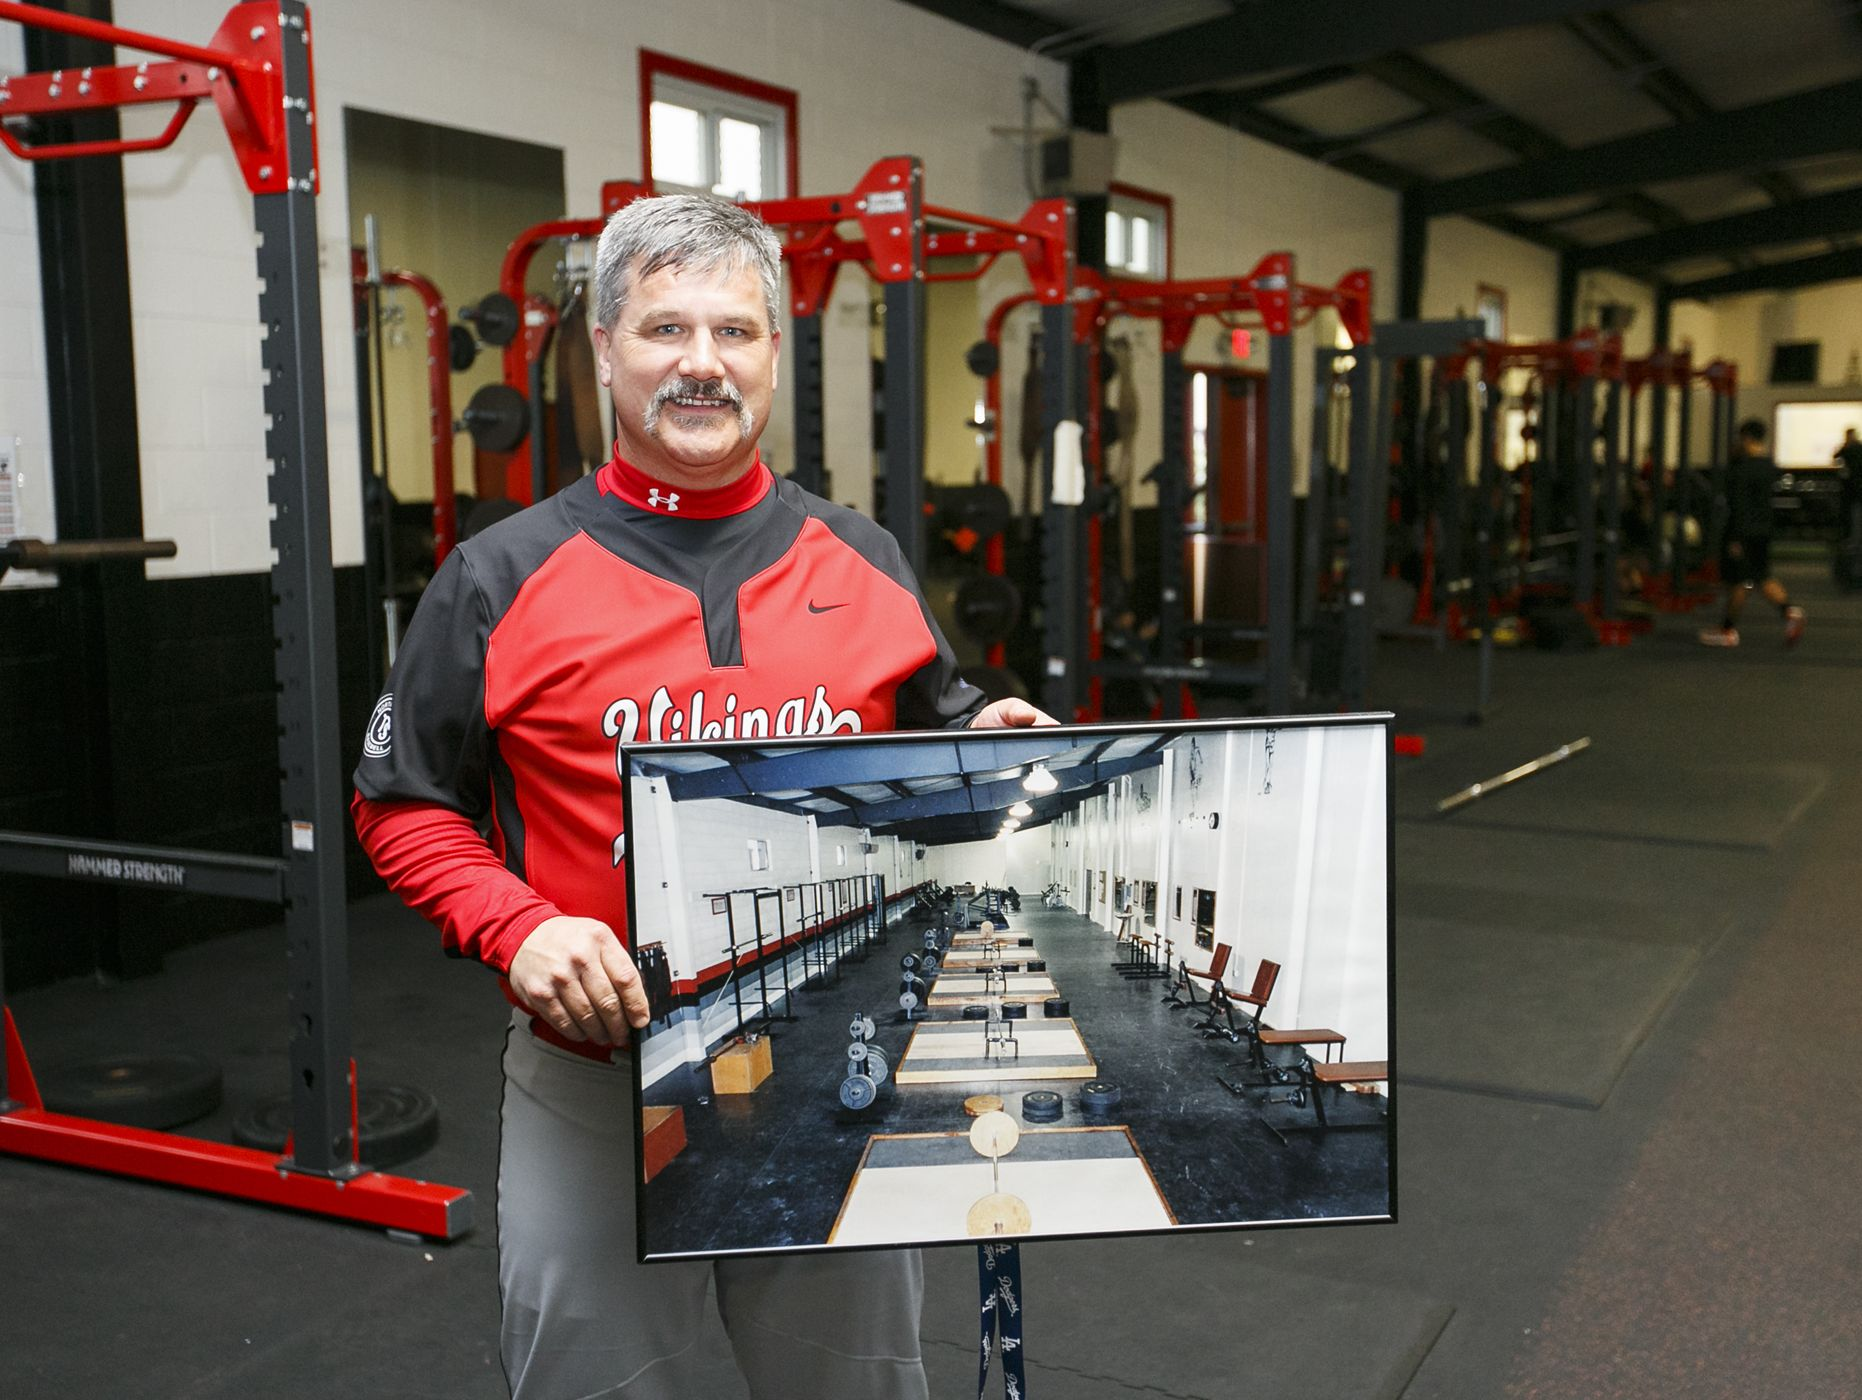 North Salem High School baseball coach Chris Lee holds a photo of the weight room taken in 1992 as he stands in the newly renovated room on Tuesday, Feb. 14, 2017. The room was considered state of the art when it was first built, but had started to show its age. Now the school has added new floors and equipment, with more improvements to come once they meet the rest of their $130,000 fund raising goal.